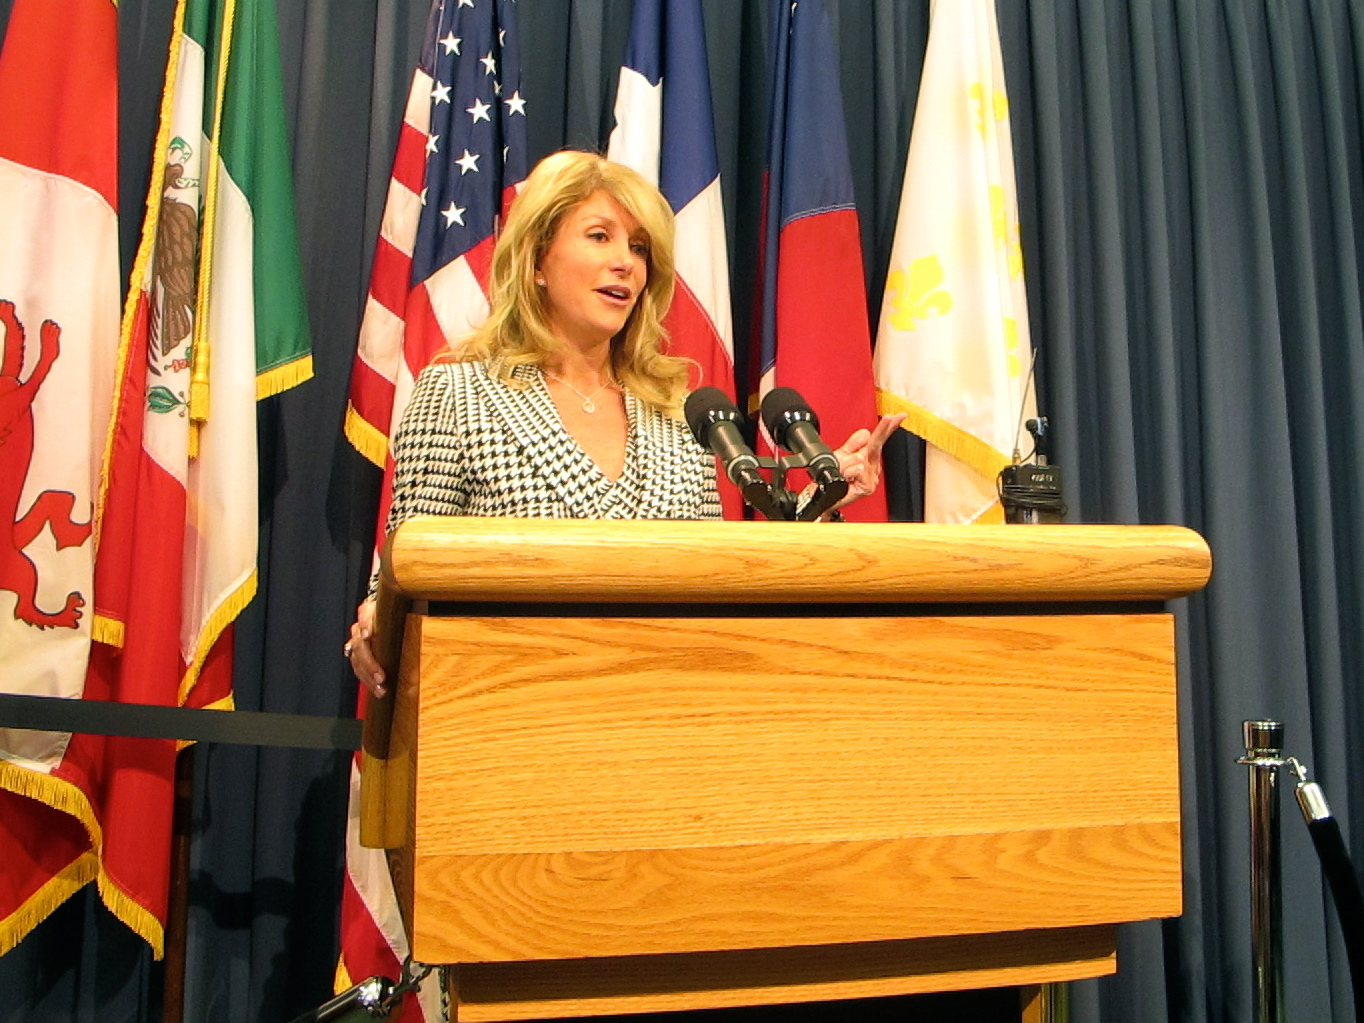 Sen. Wendy Davis spoke at a press conference on Tuesday morning.